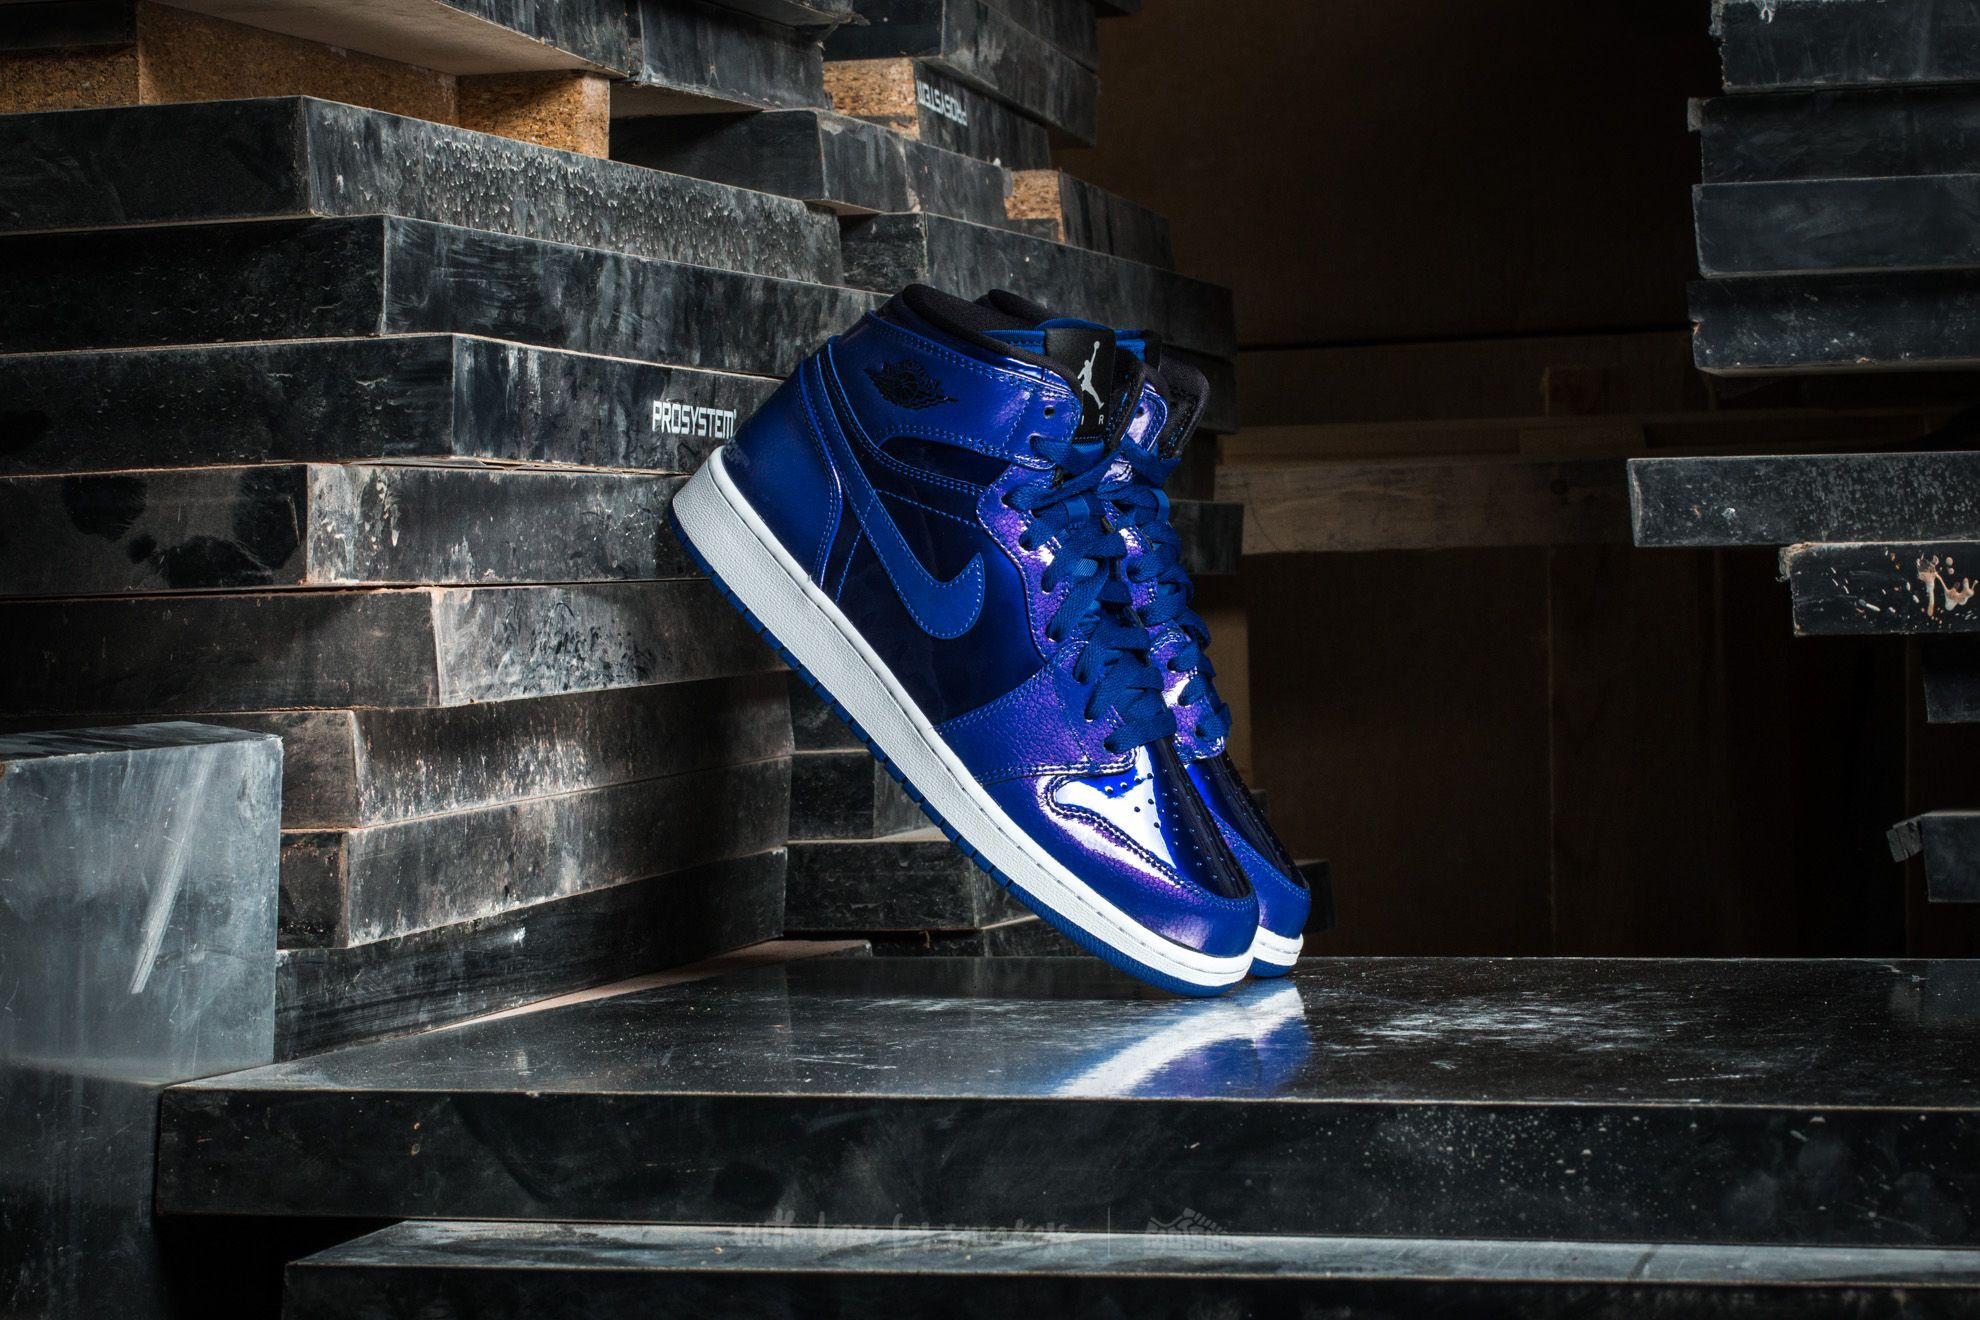 Air Jordan 1 Retro High BG Deep Royal Blue/ Black-White